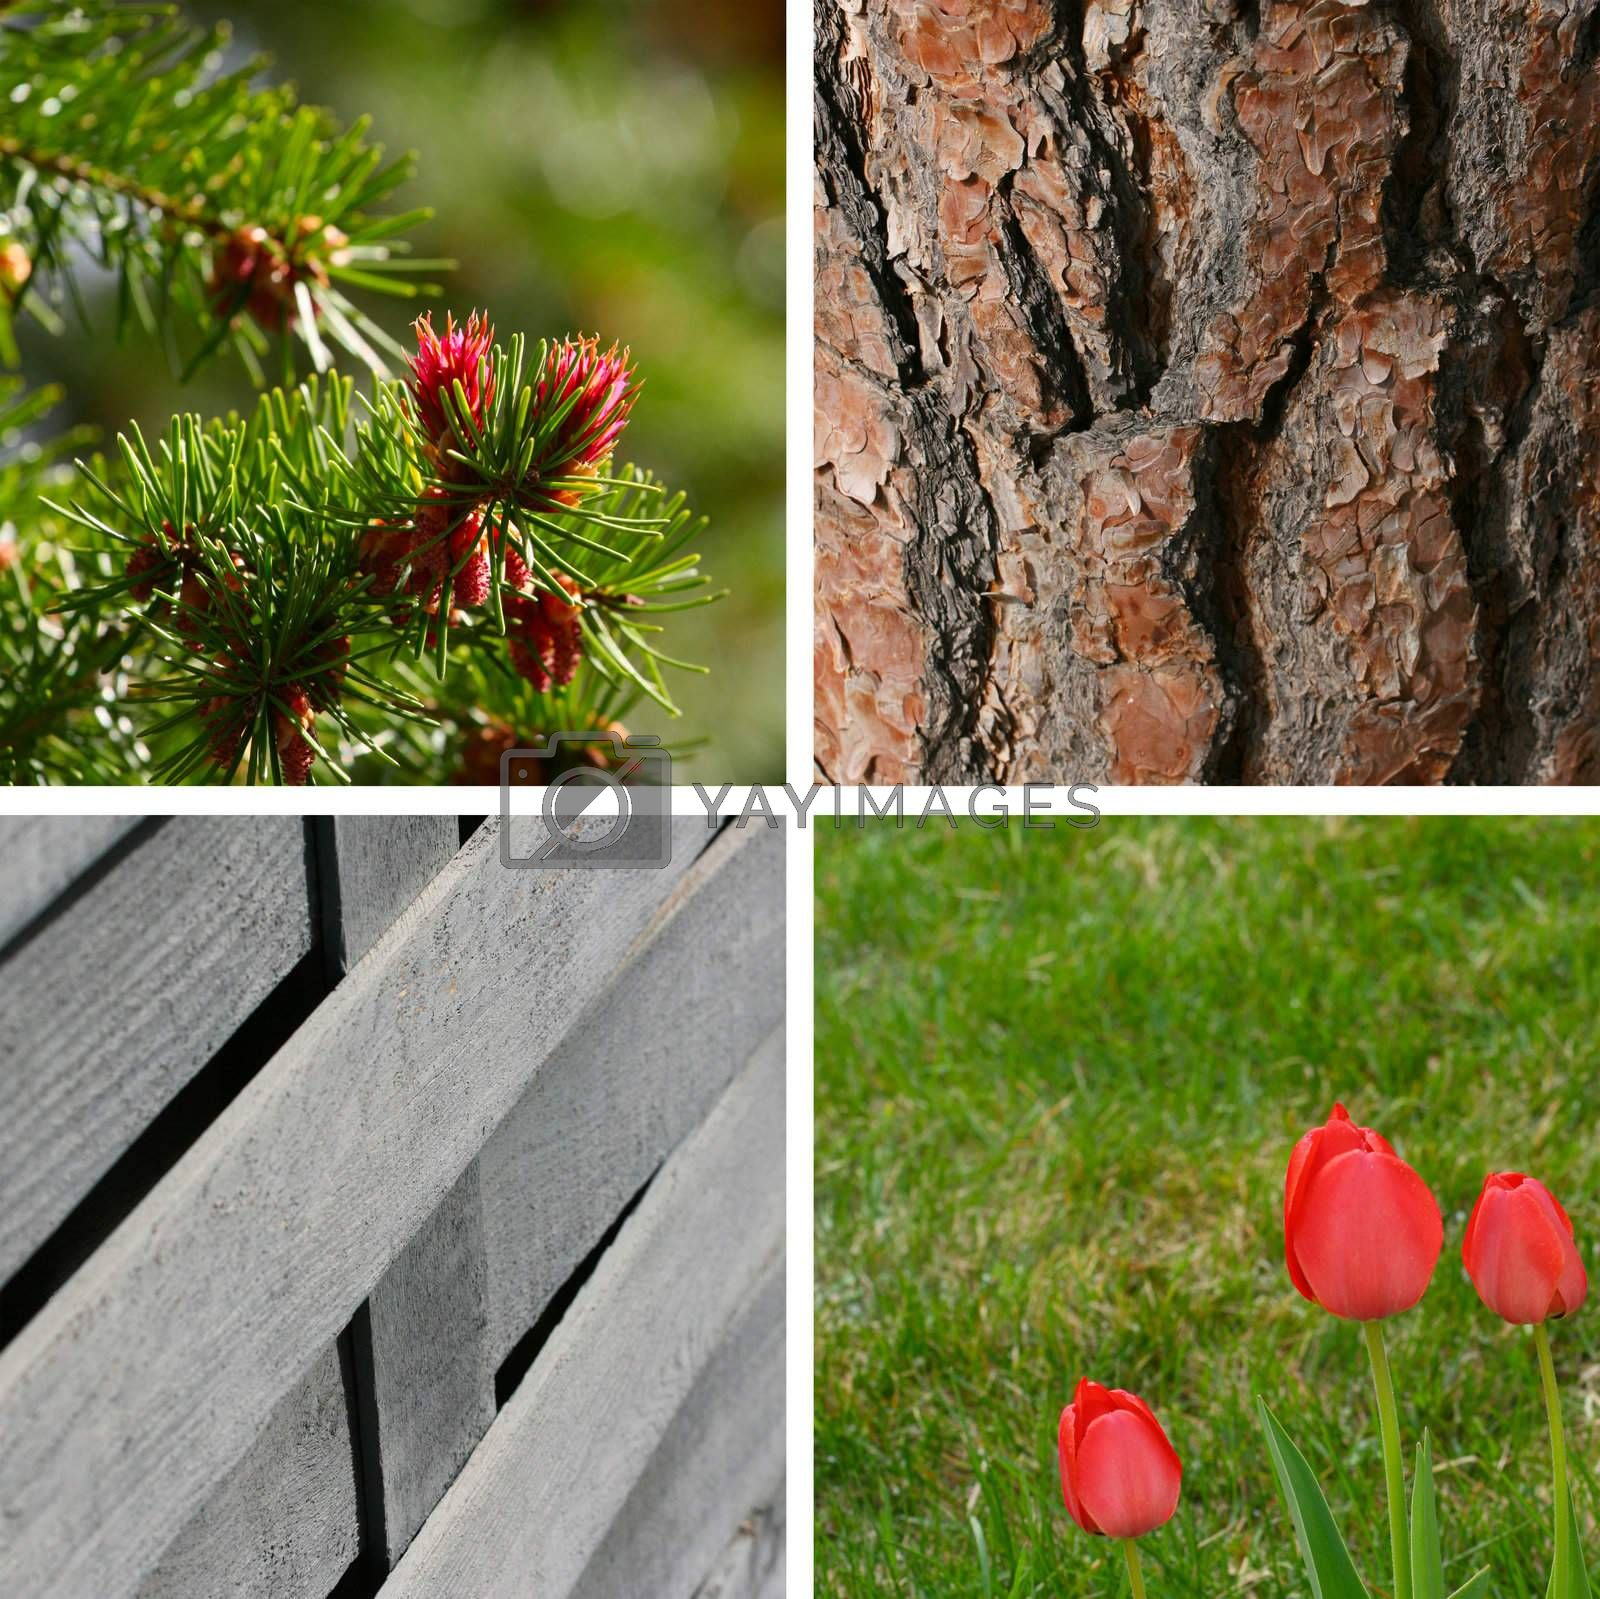 Variety of spring garden backgrounds and textures